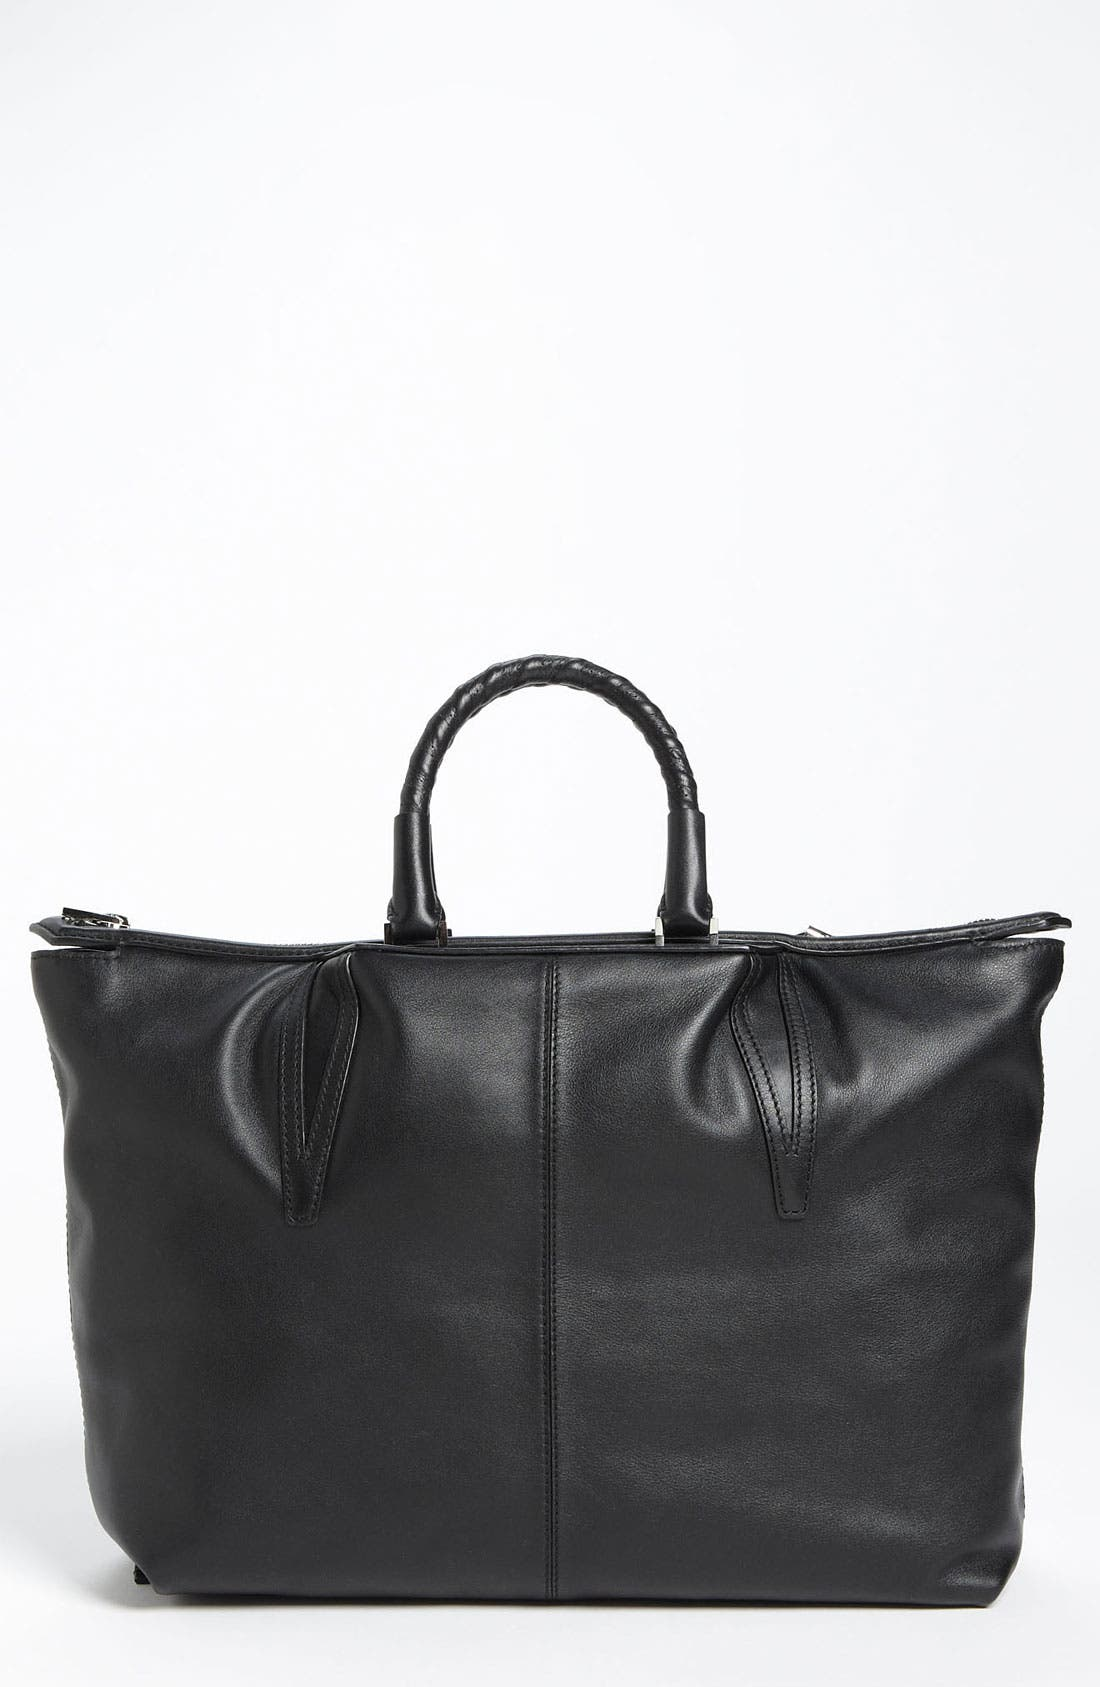 Main Image - Alexander Wang 'Liner - Small' Leather Satchel